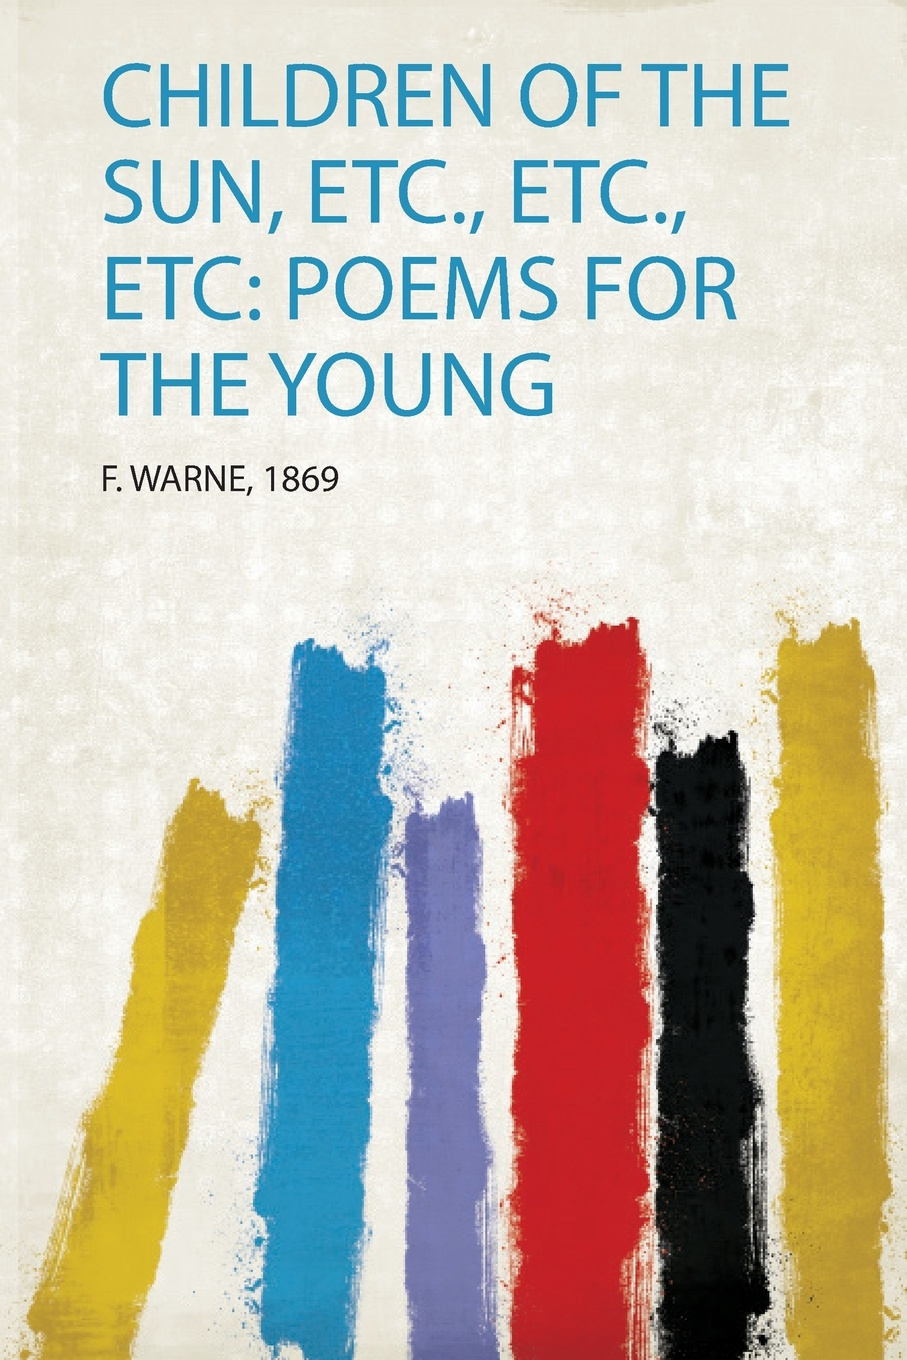 Children of the Sun, Etc., Etc., Etc. Poems for the Young